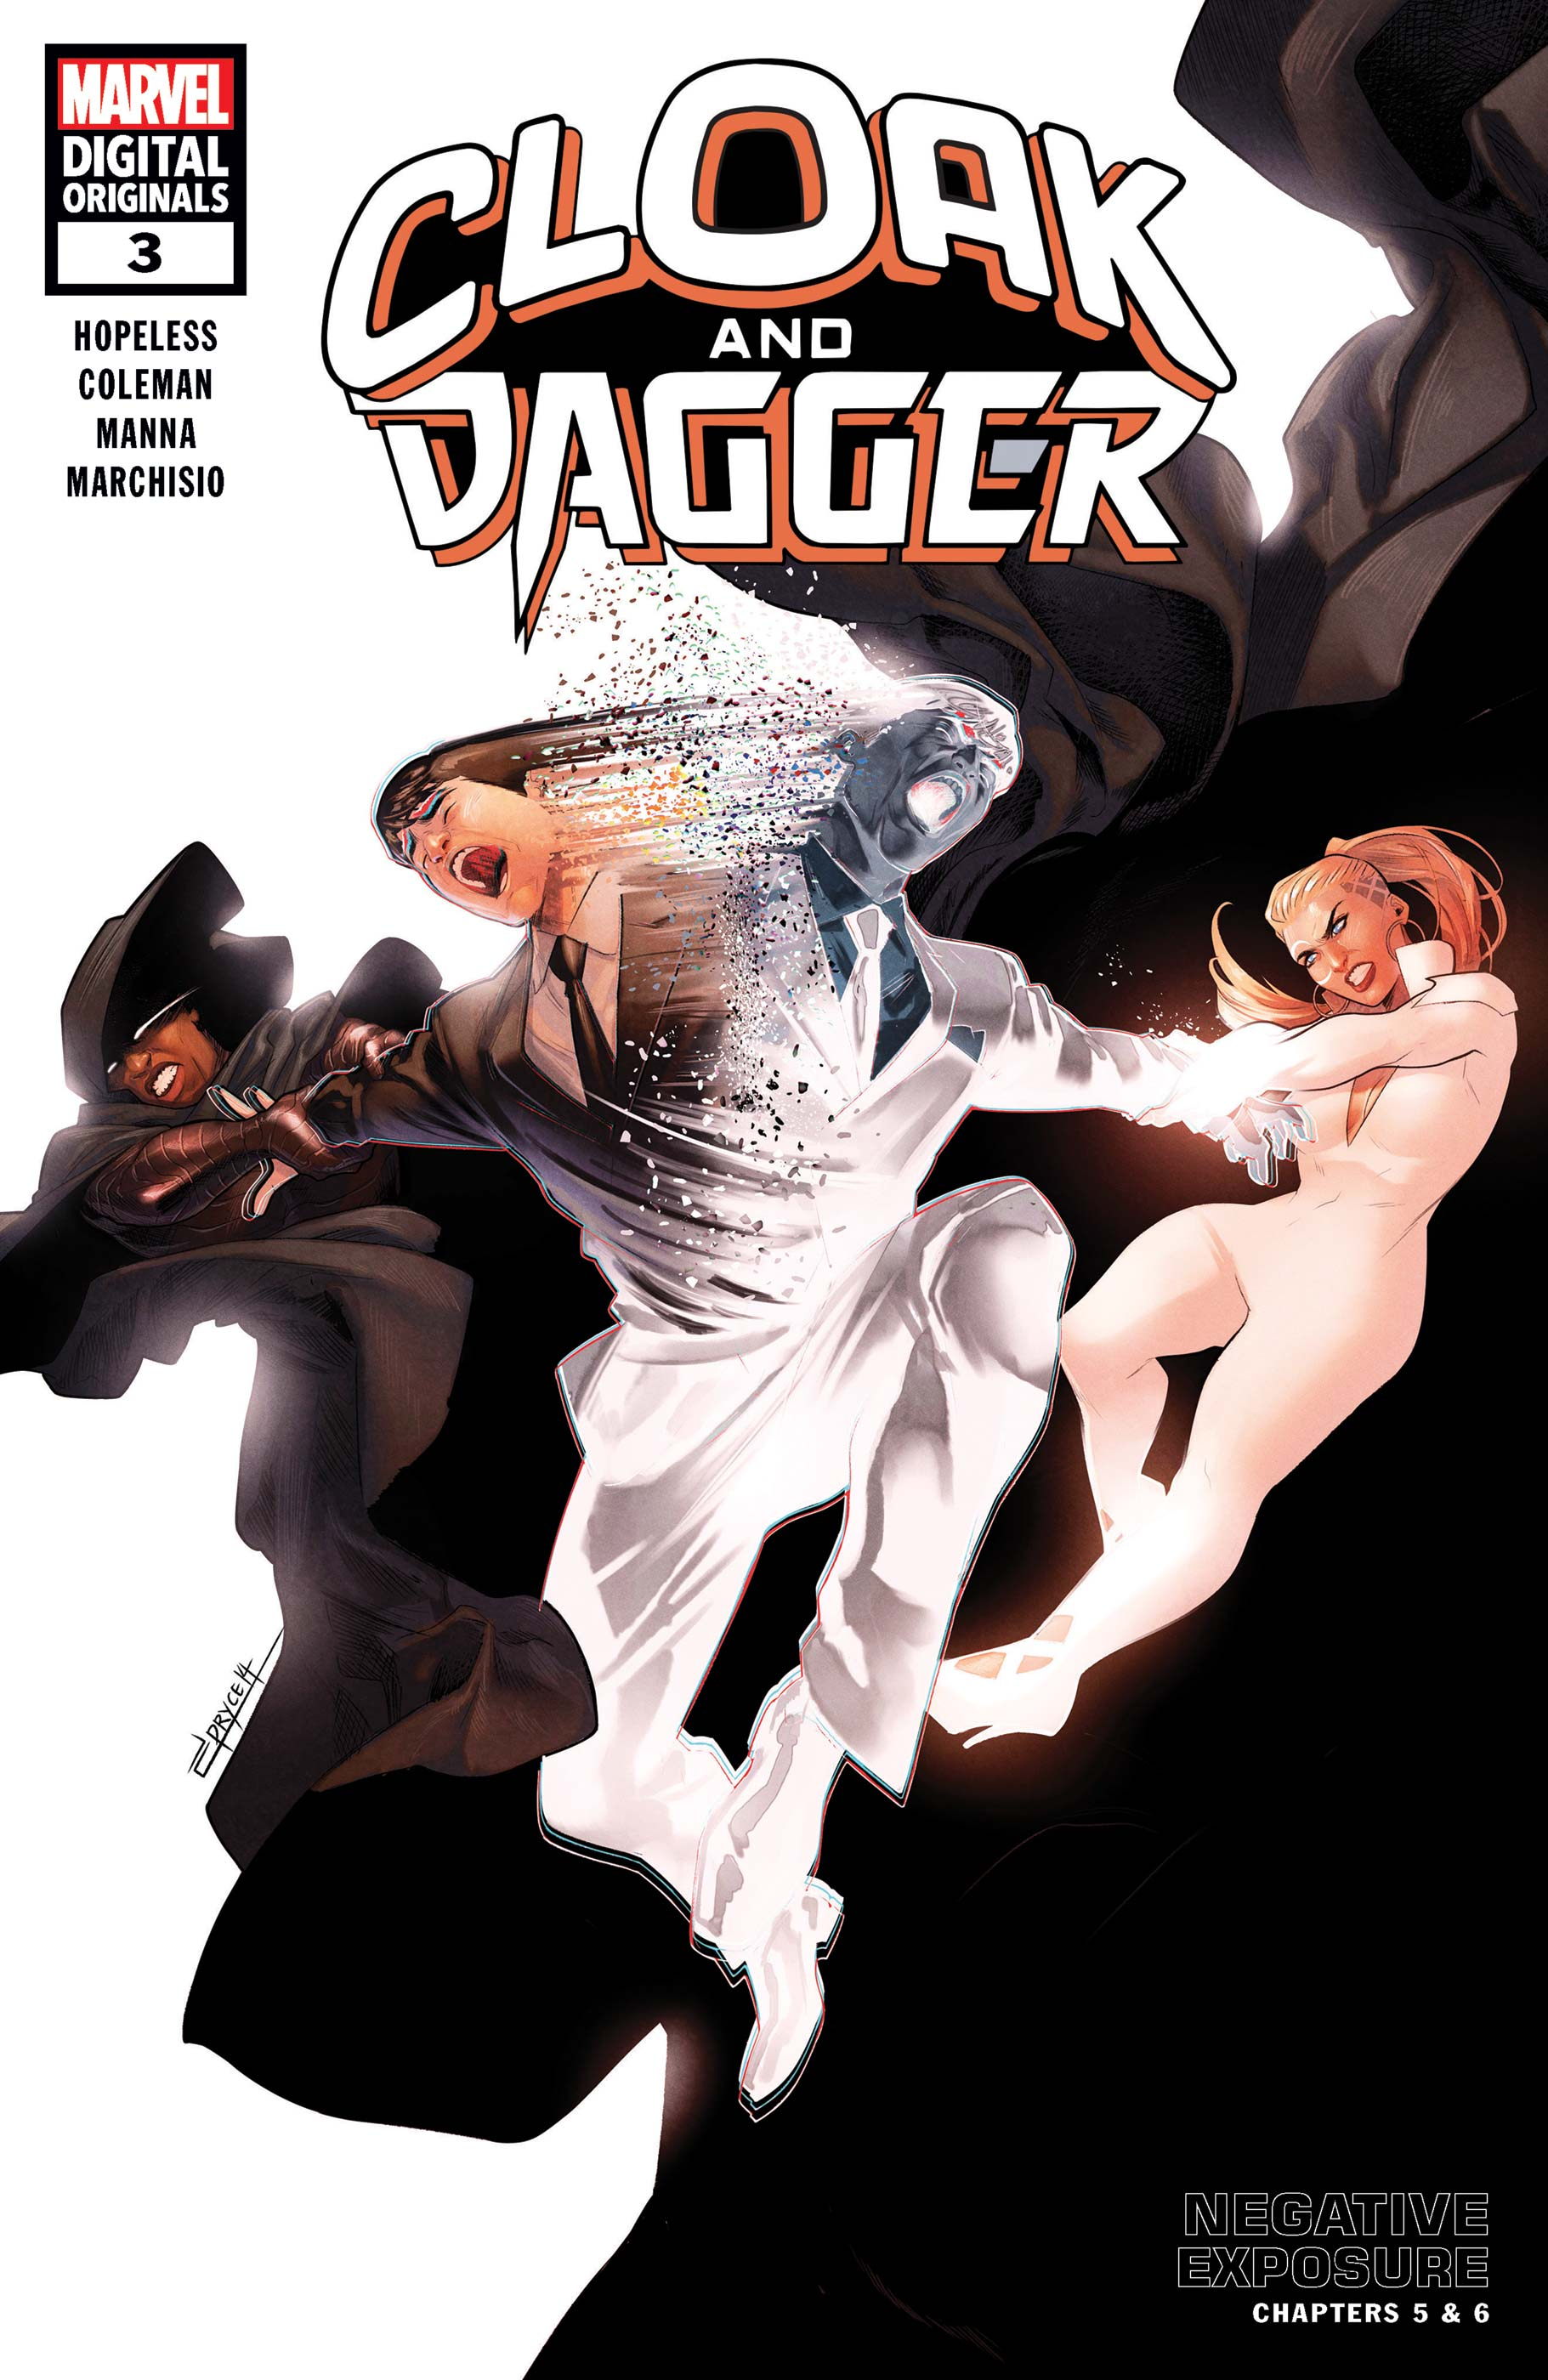 Cloak and Dagger: Marvel Digital Original - Negative Exposure (2018) #3